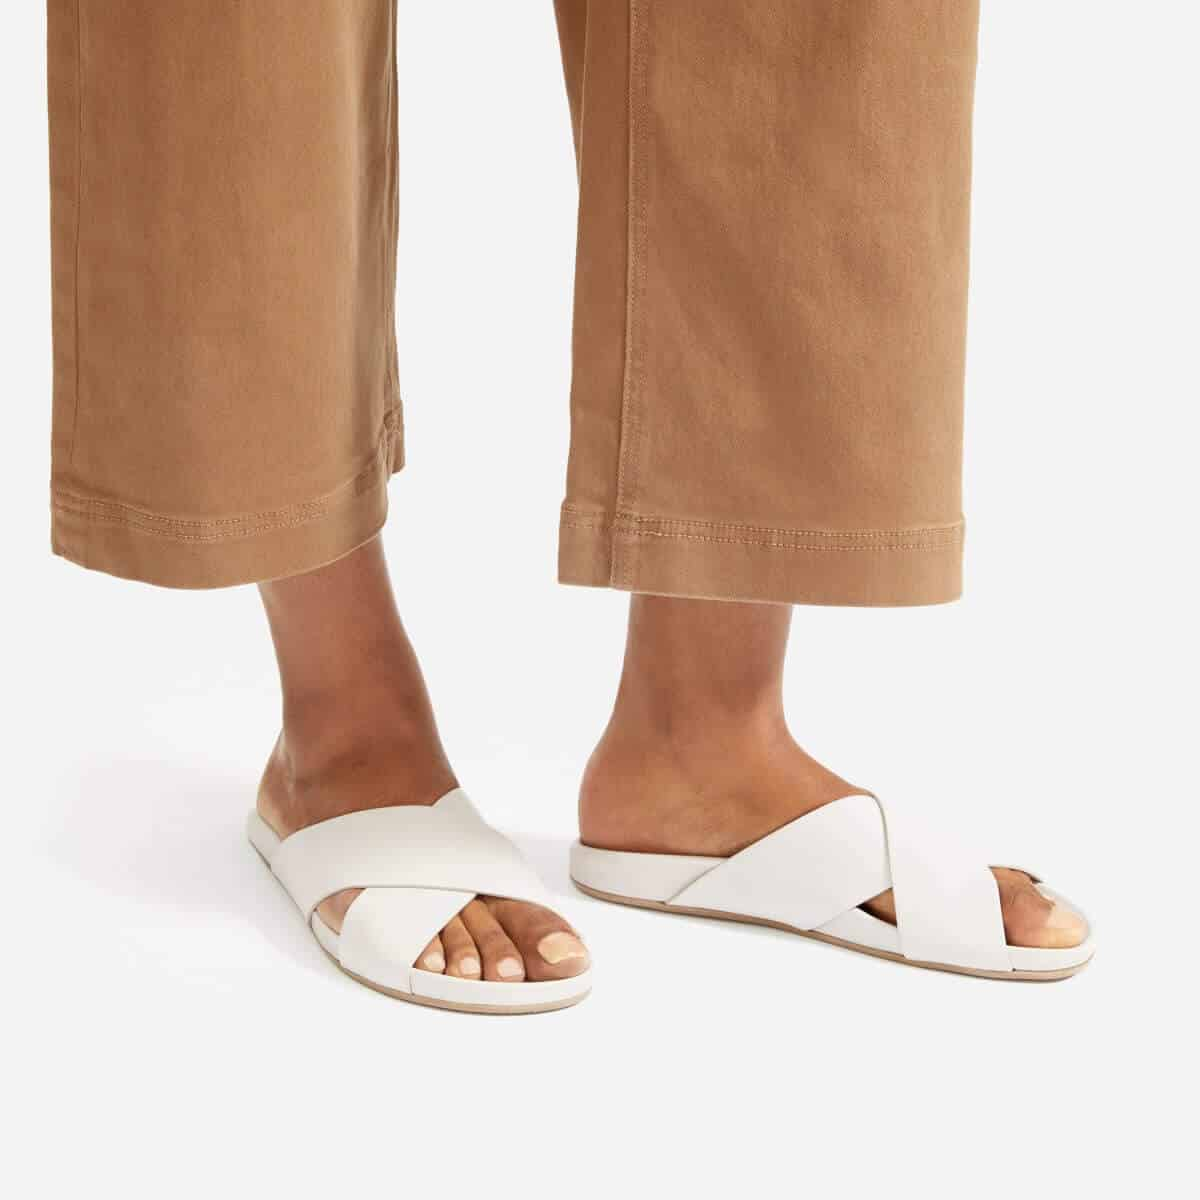 In the spirit of walking towards a greener future, we've been hunting for ethical and eco friendly sandals Image by Everlane #ecofriendlysandals #ethicalfashion